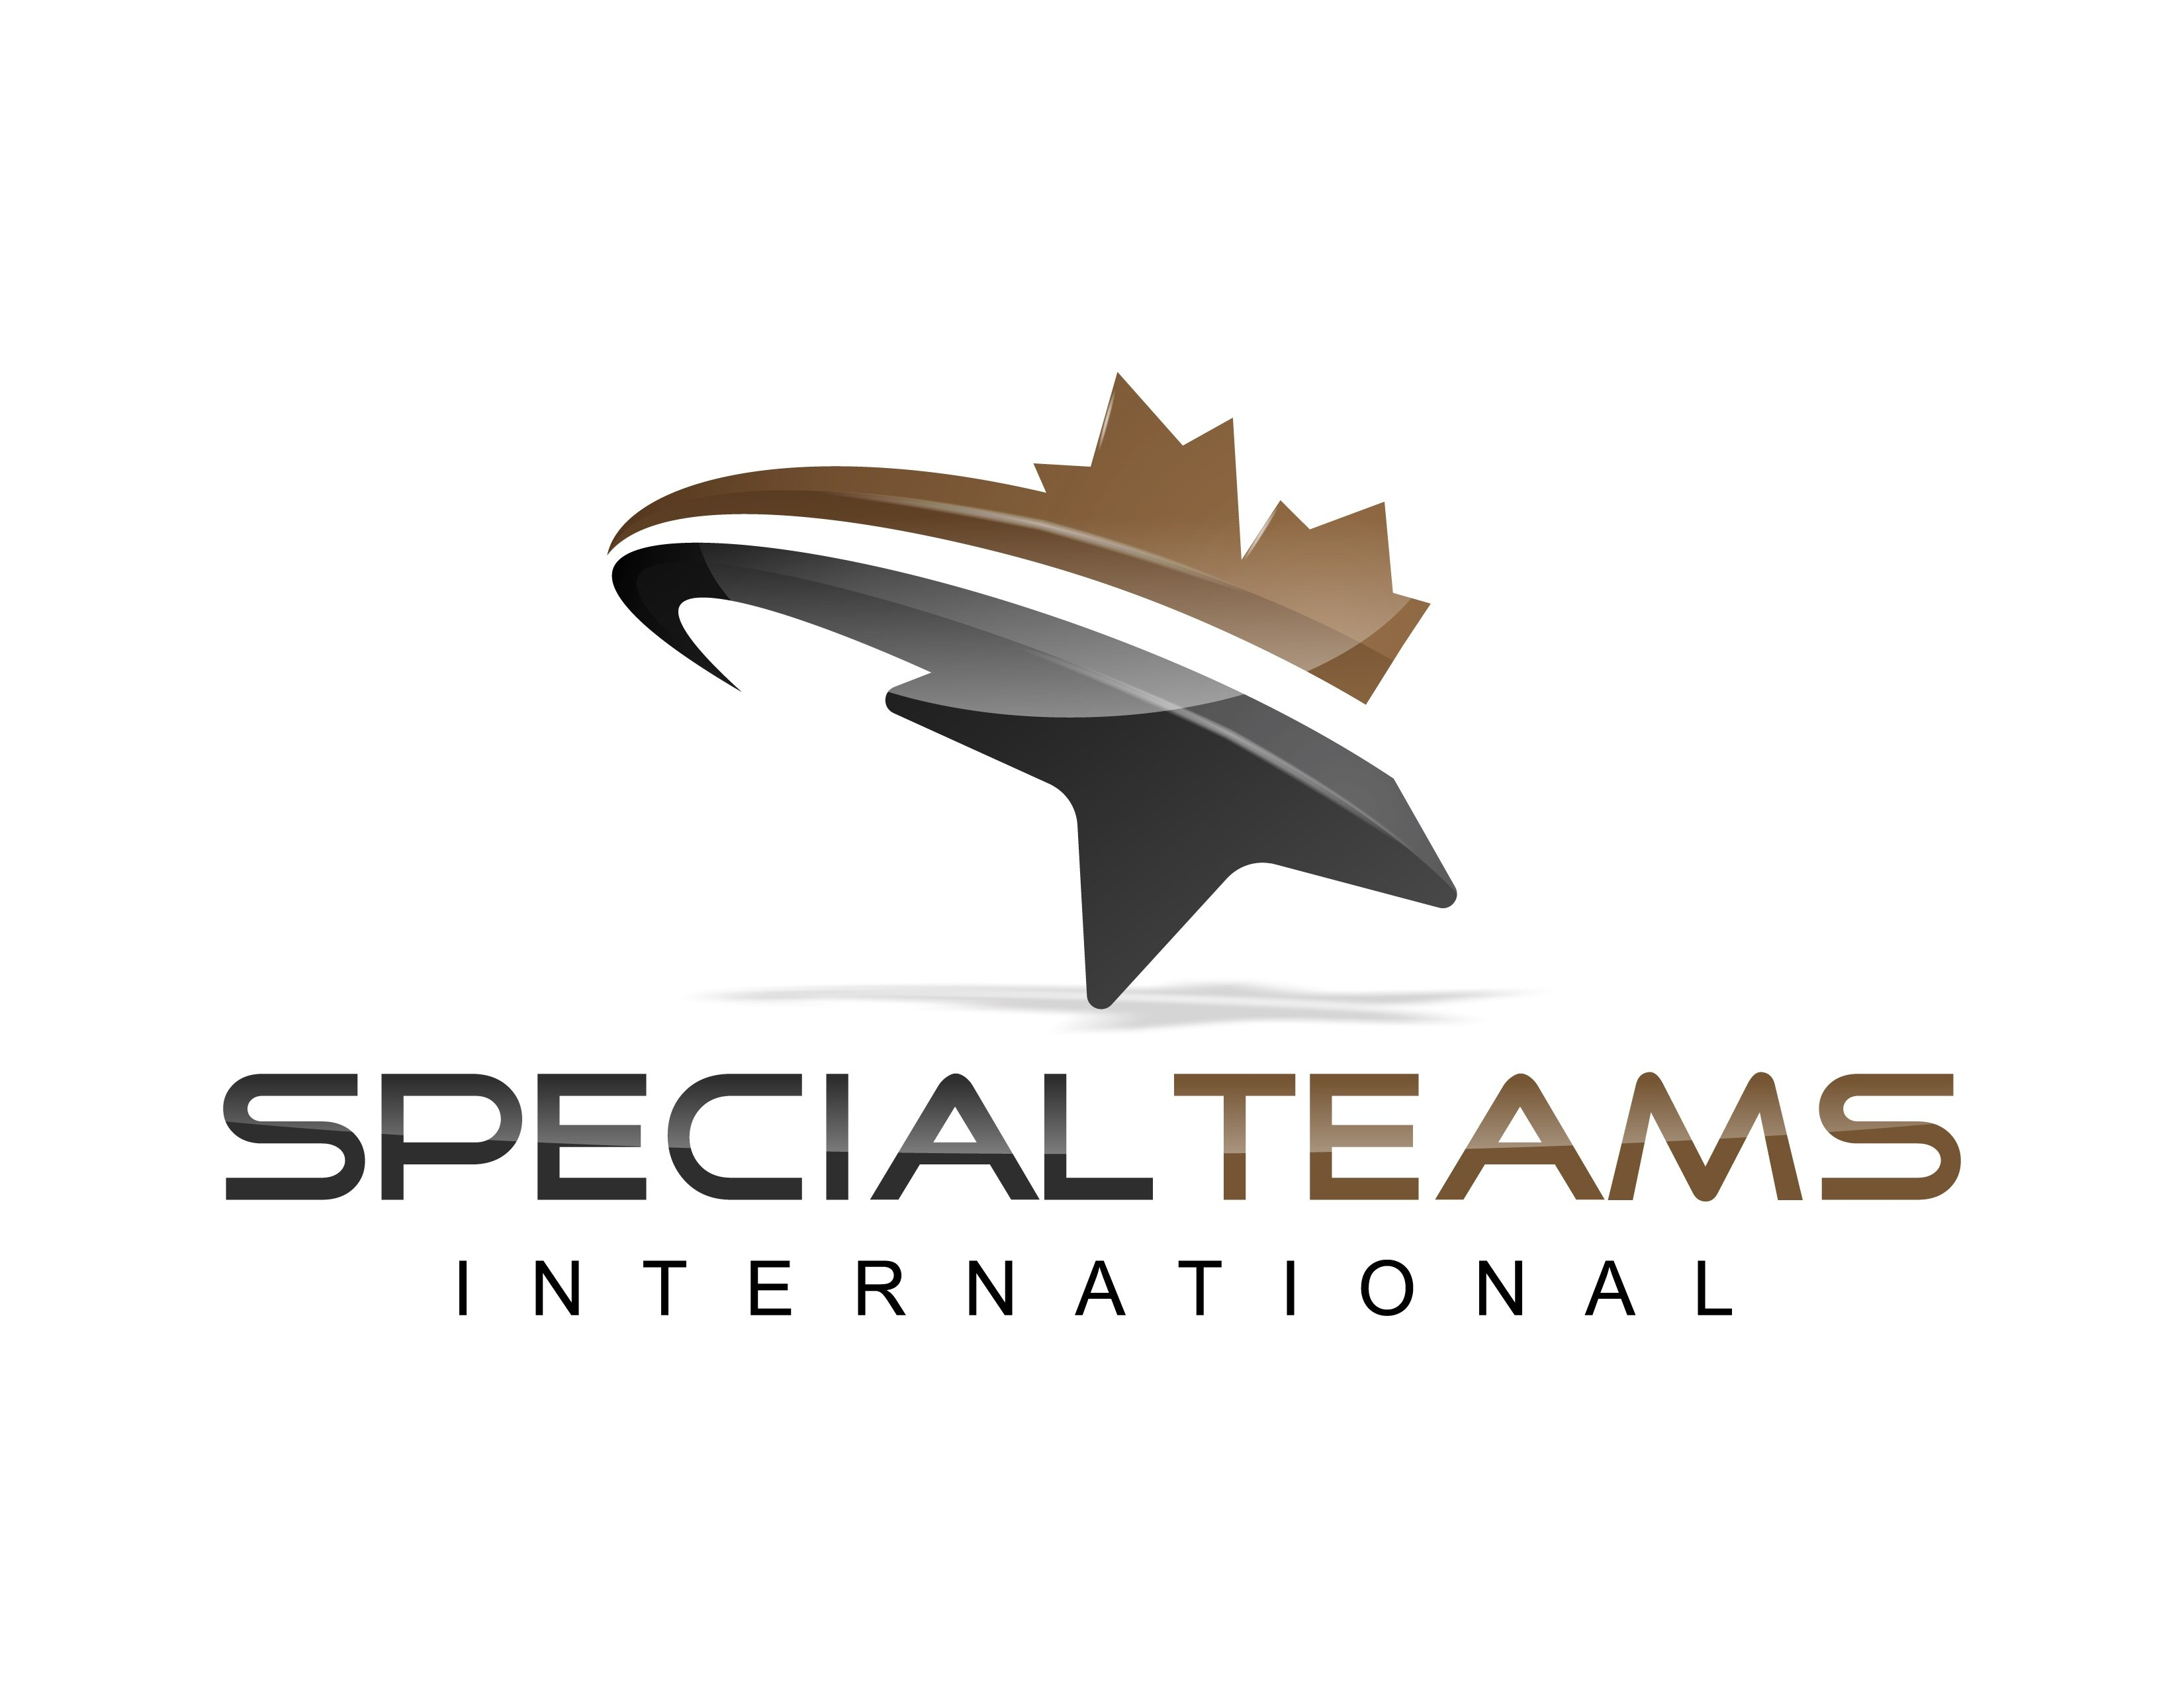 Special Teams International Inc logo